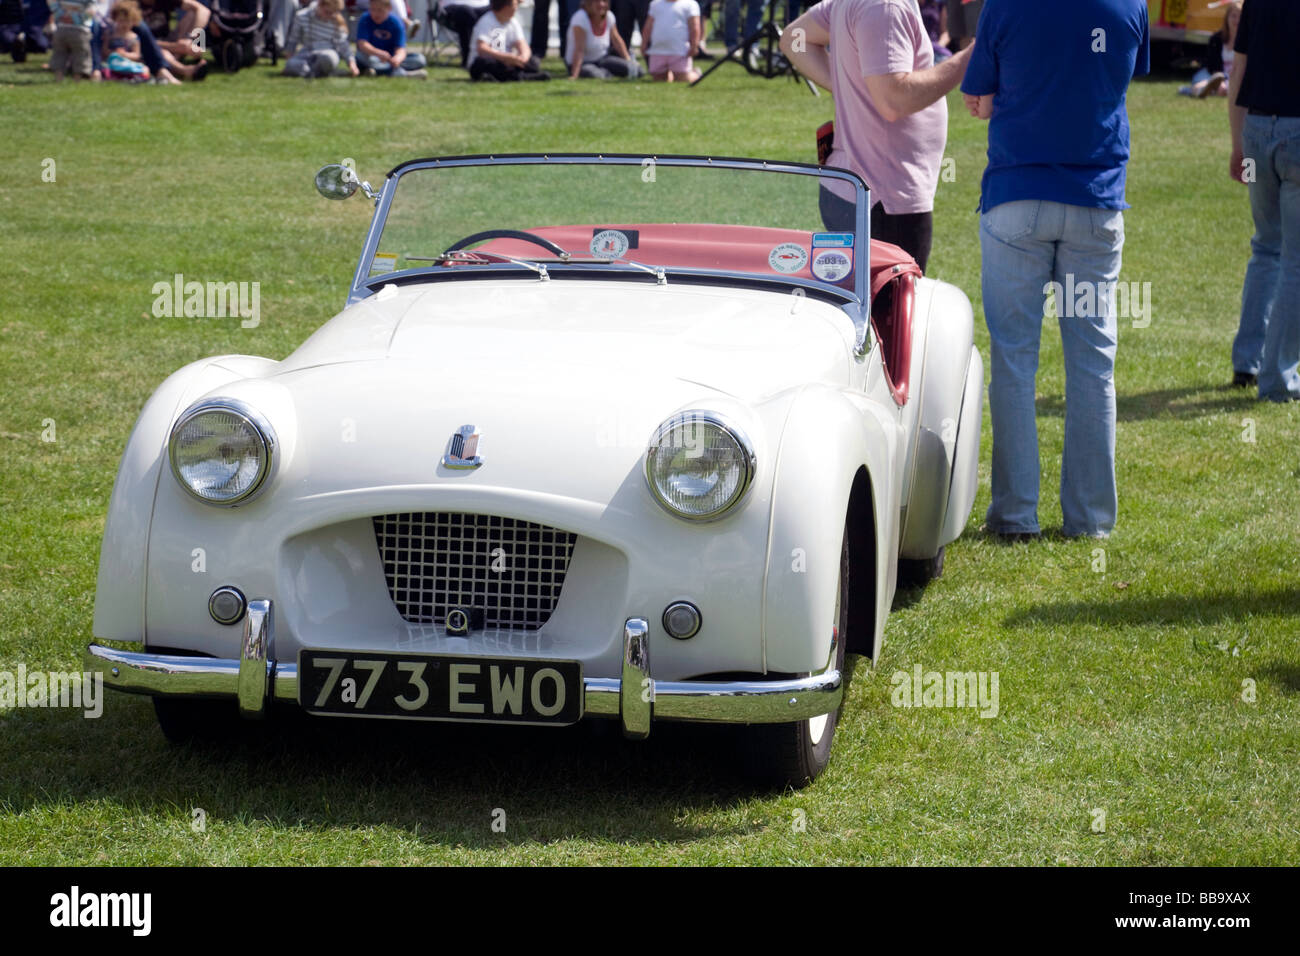 The TS2, the second Triumph TR sports car to ever be built; at the Wallingford Classic Car rally, Oxfordshire, UK - Stock Image